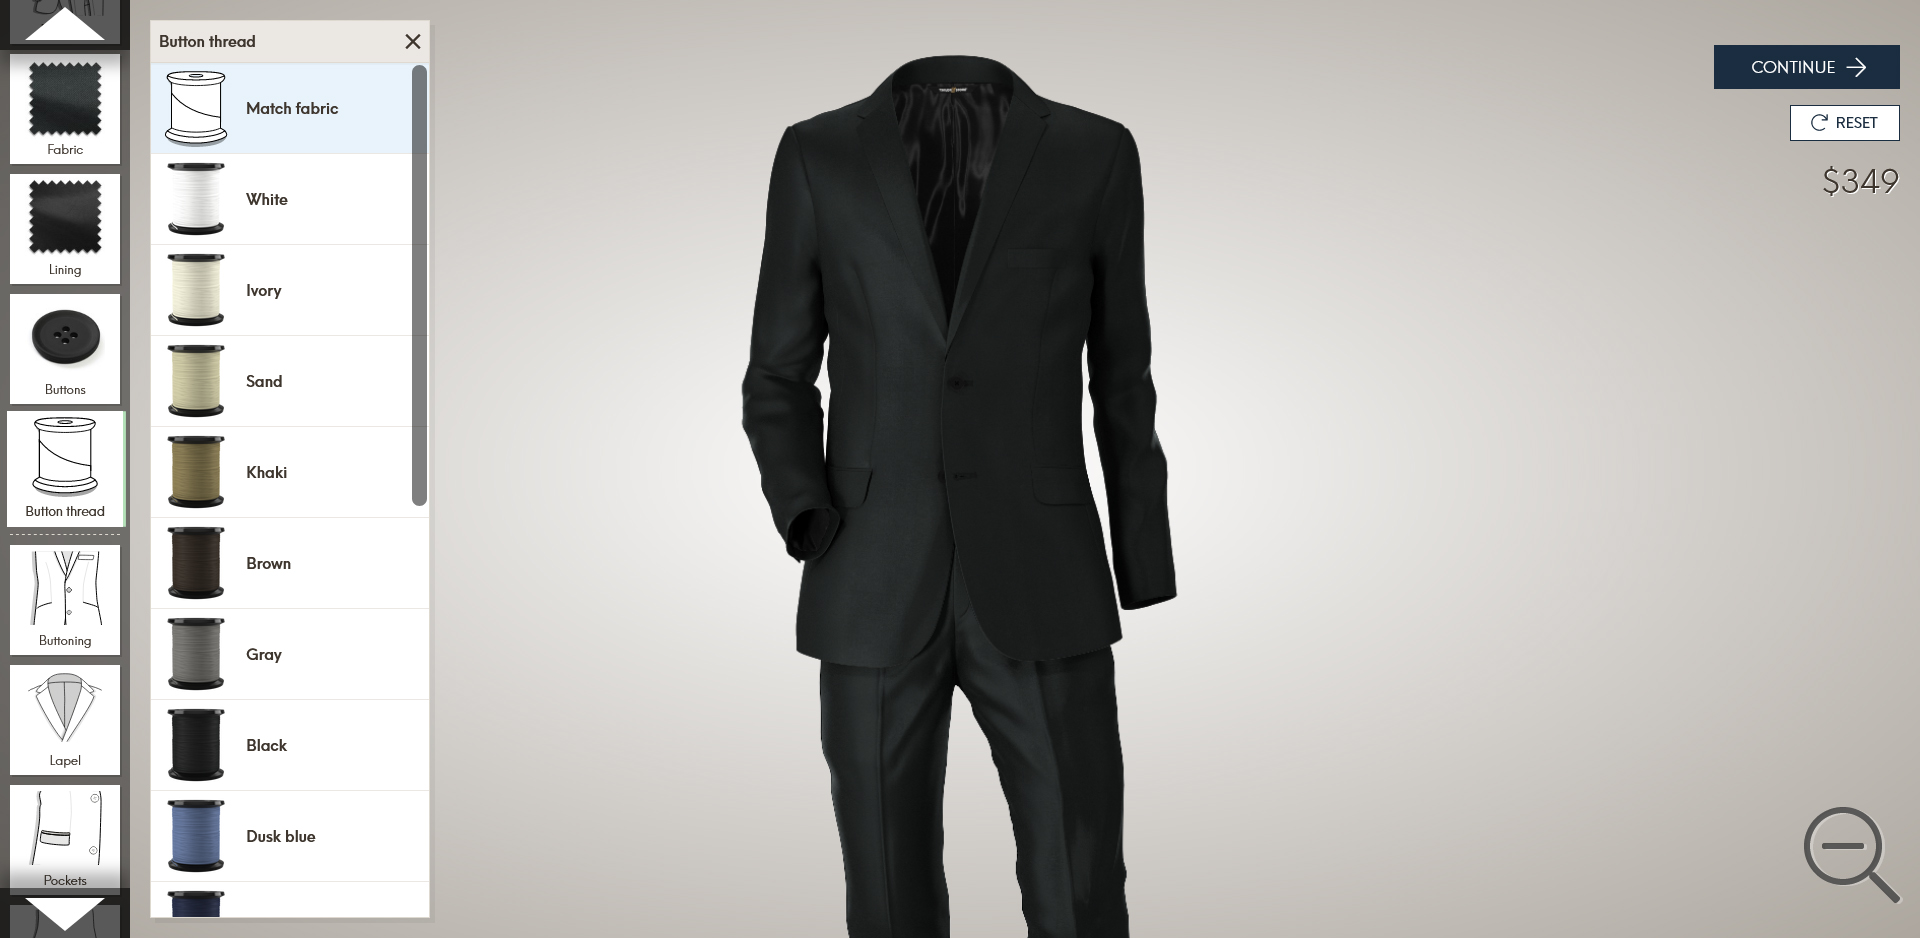 Tailor Store made-to-measure suit style & design options